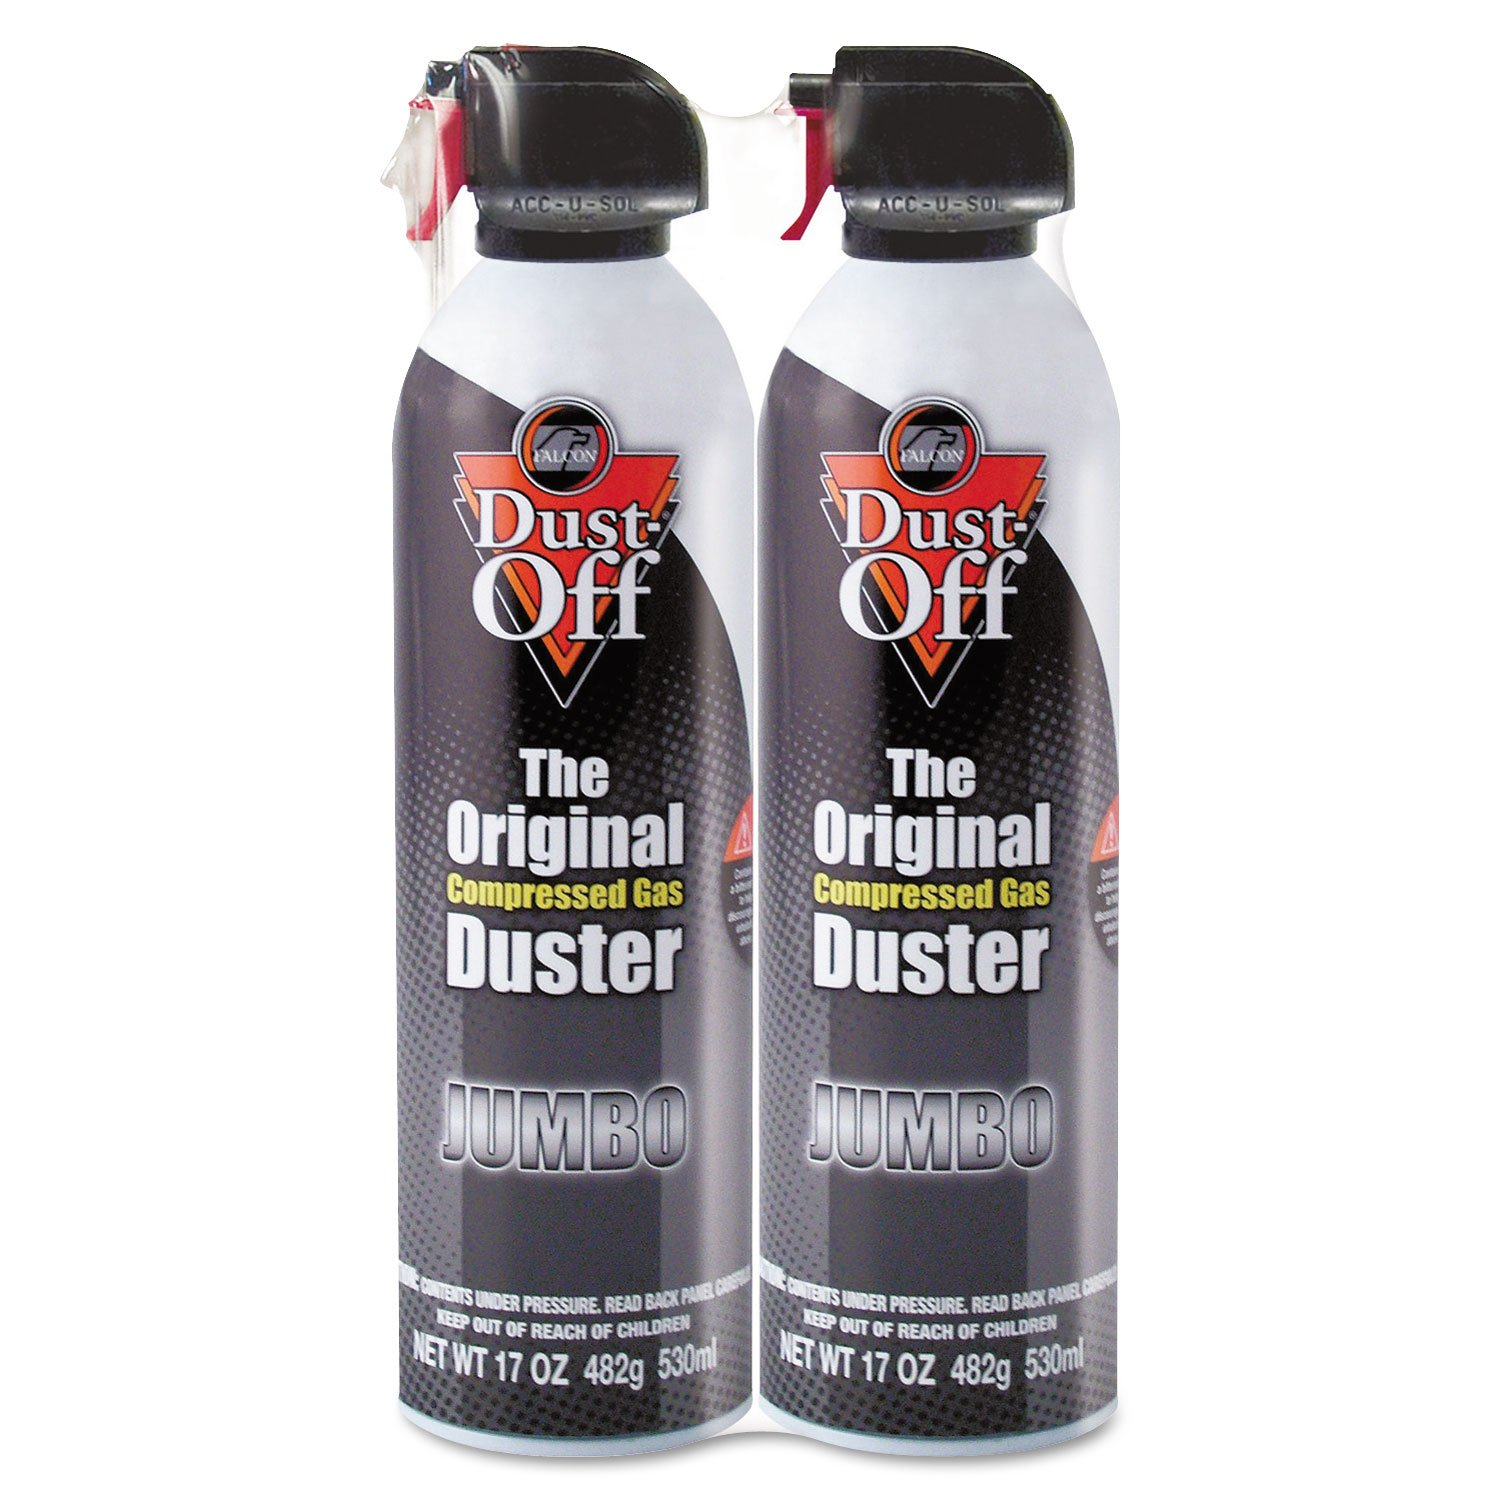 FALDPSJMB2 - Dust-off Disposable Compressed Gas Duster